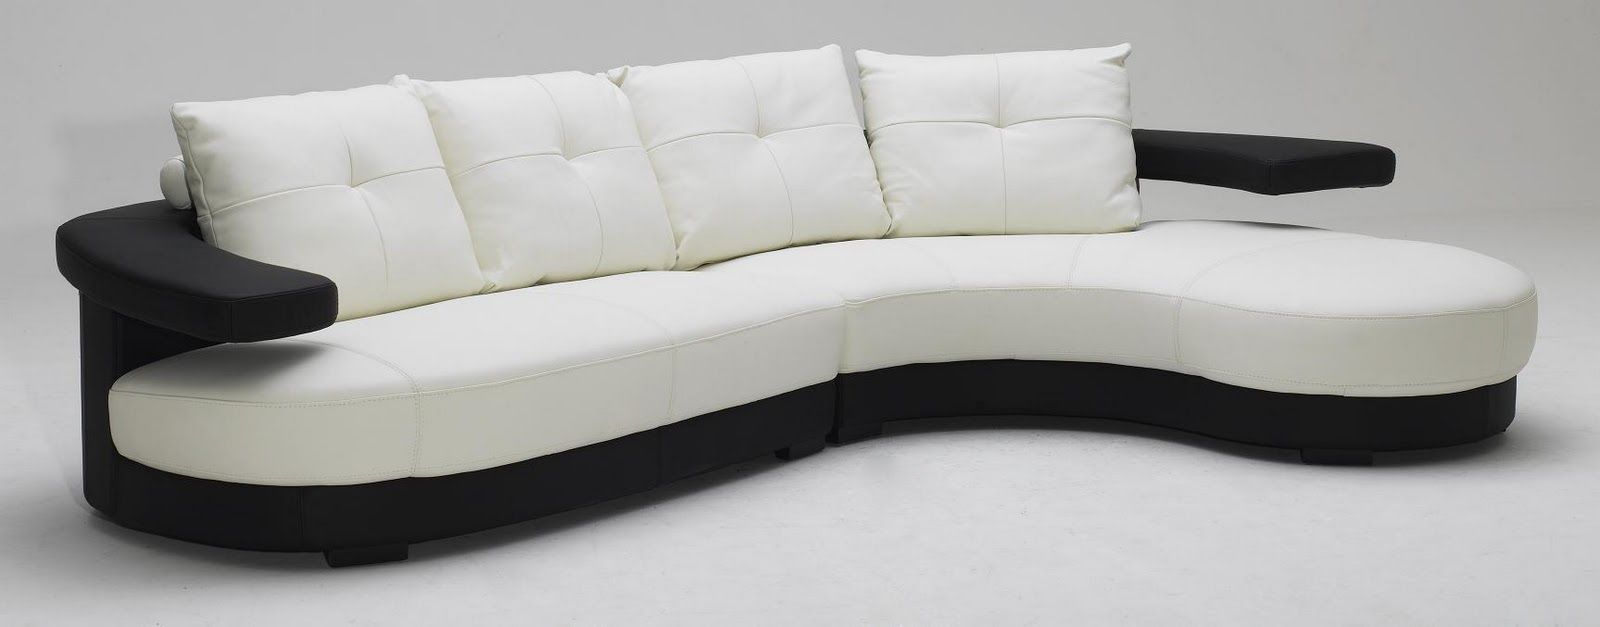 Sofa Design Interior Design